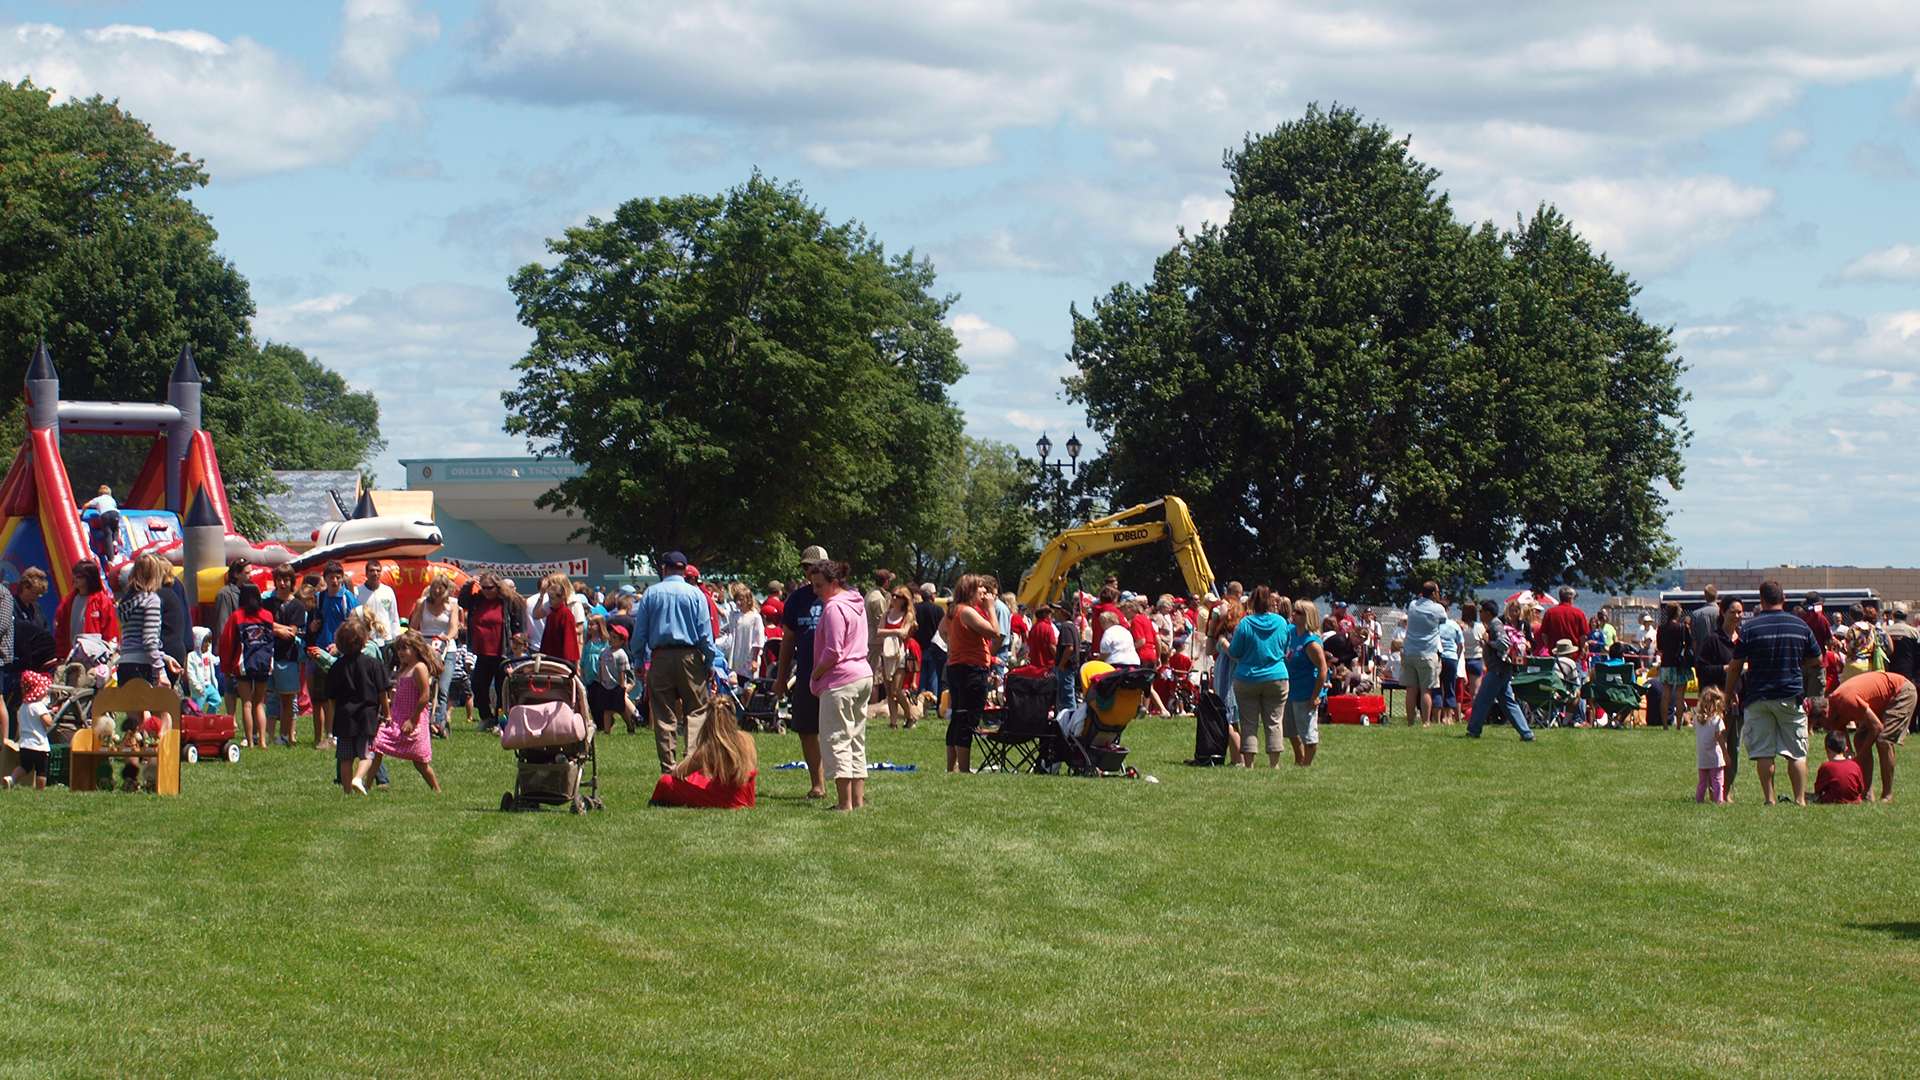 Orillia Funfest - August Events To Look Forward To